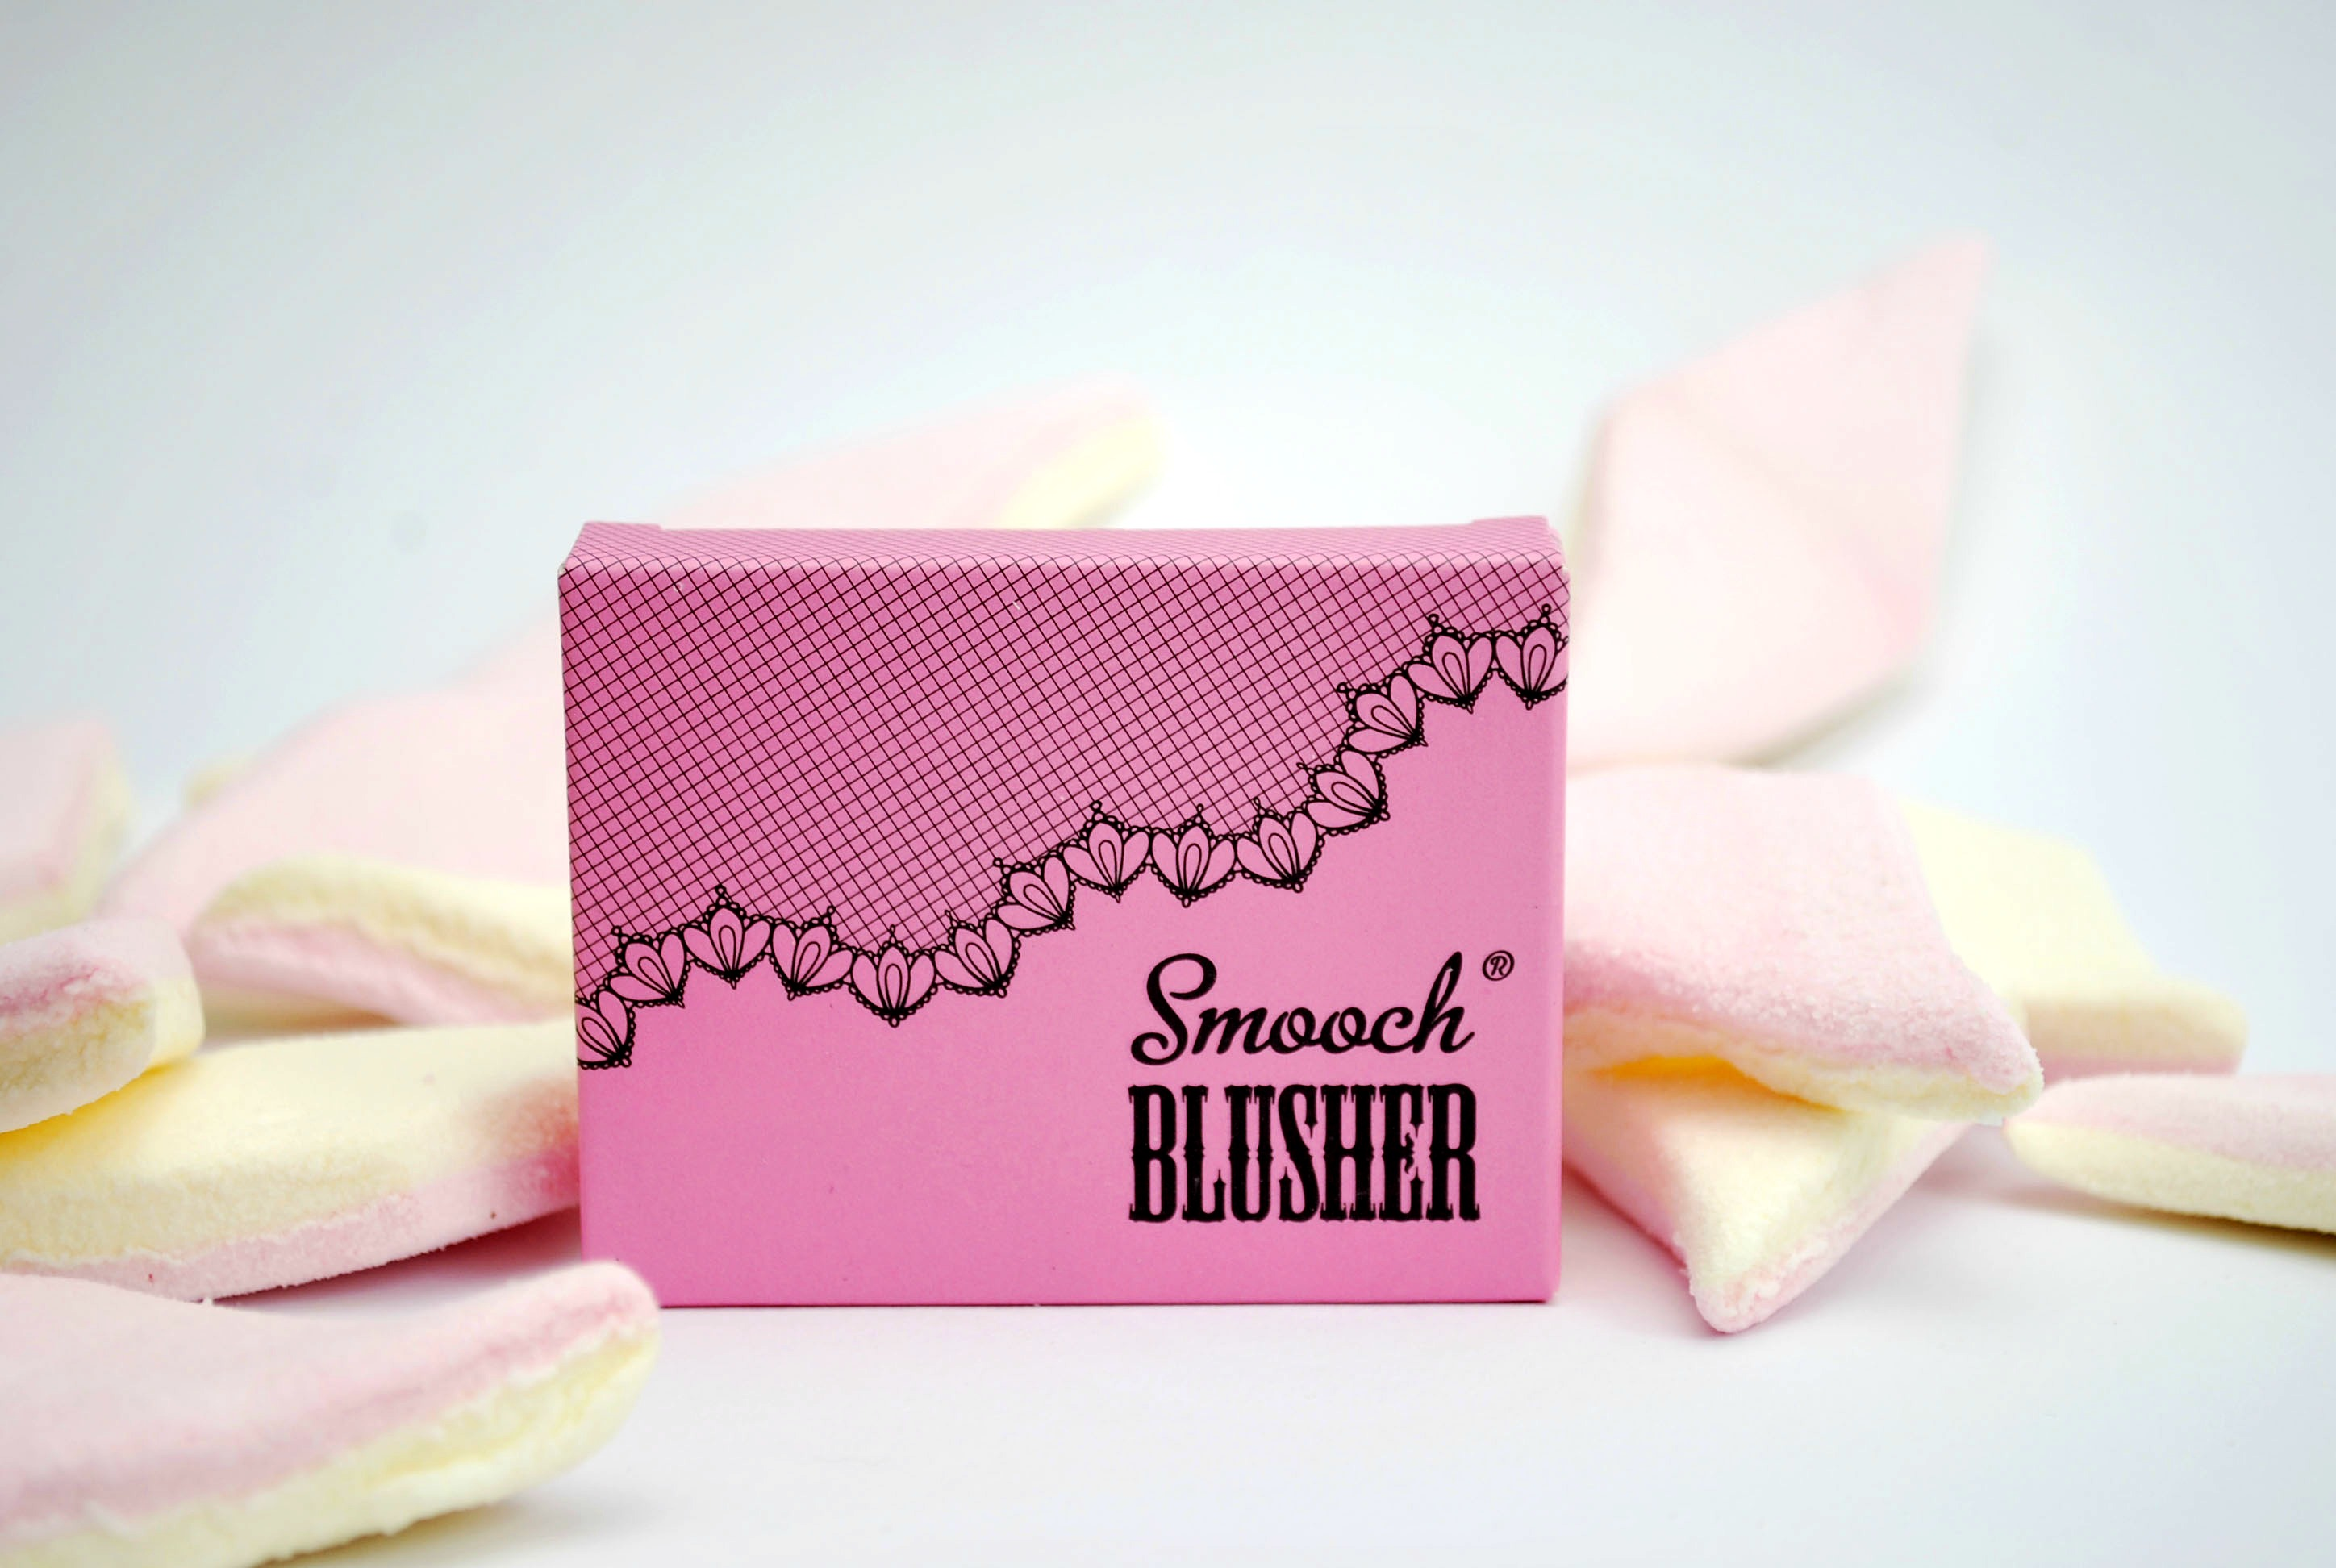 smooch blush sugar rush review